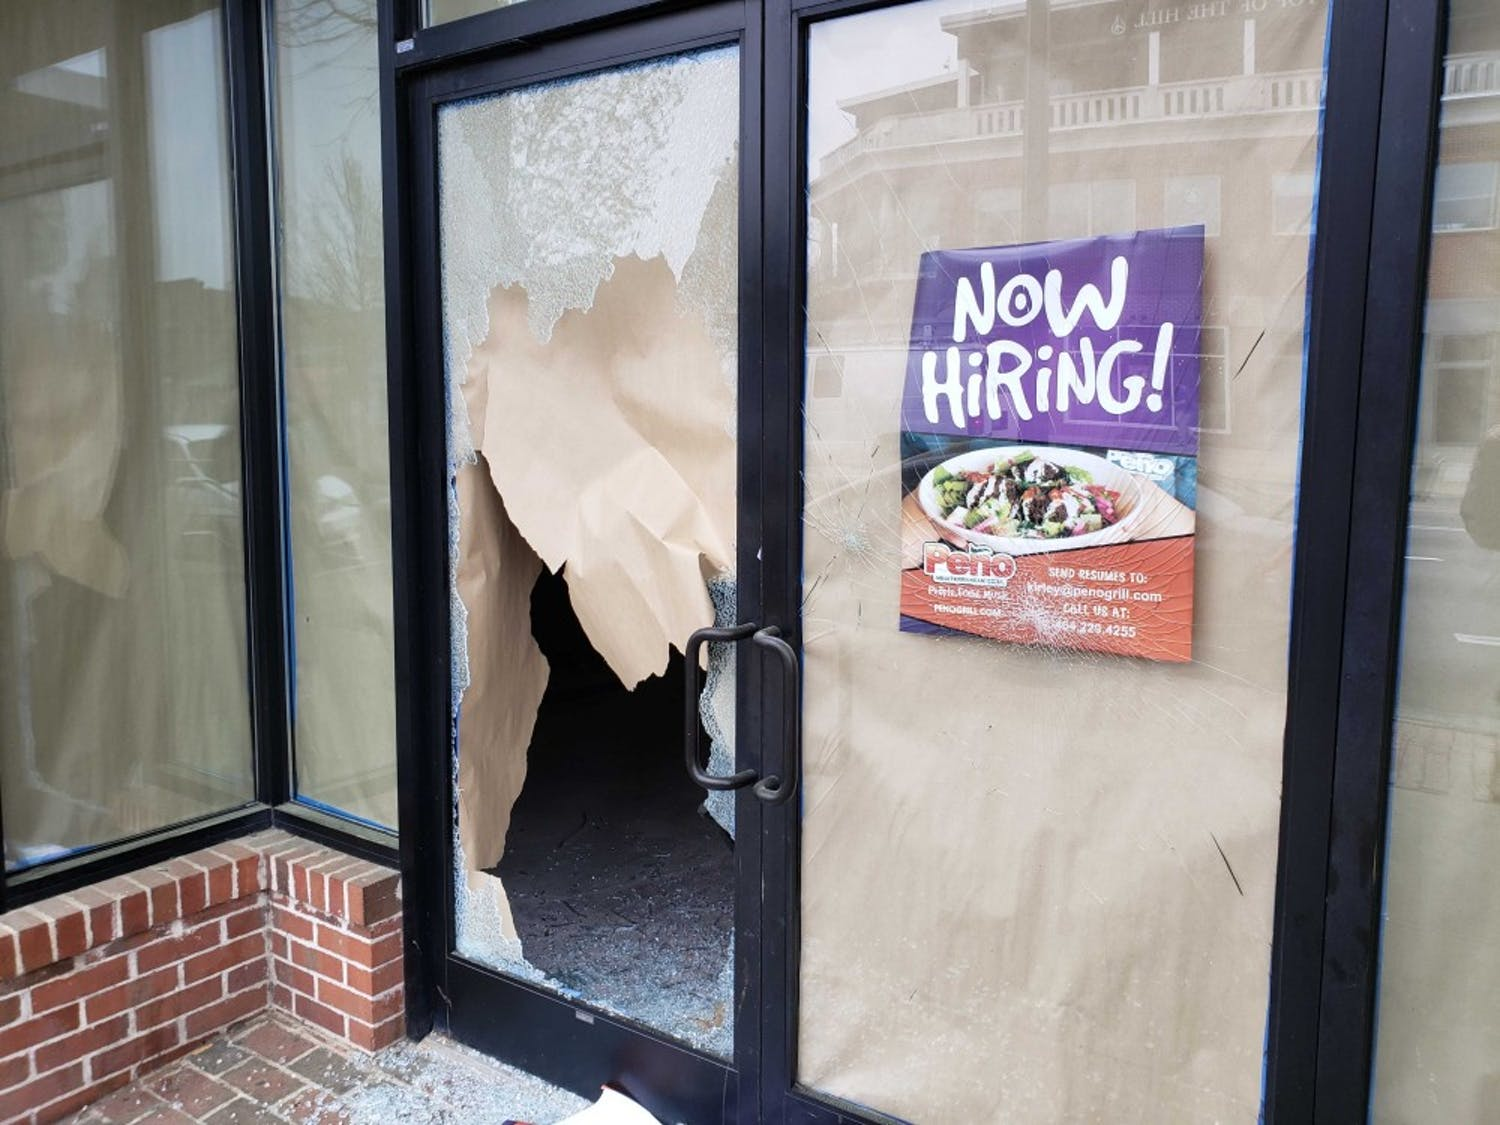 The storefronts of Sup Dogs and what was Tama Tea have been shattered. According to the Town, it seems no one entered the building, but instead through chairs to shatter the glass.